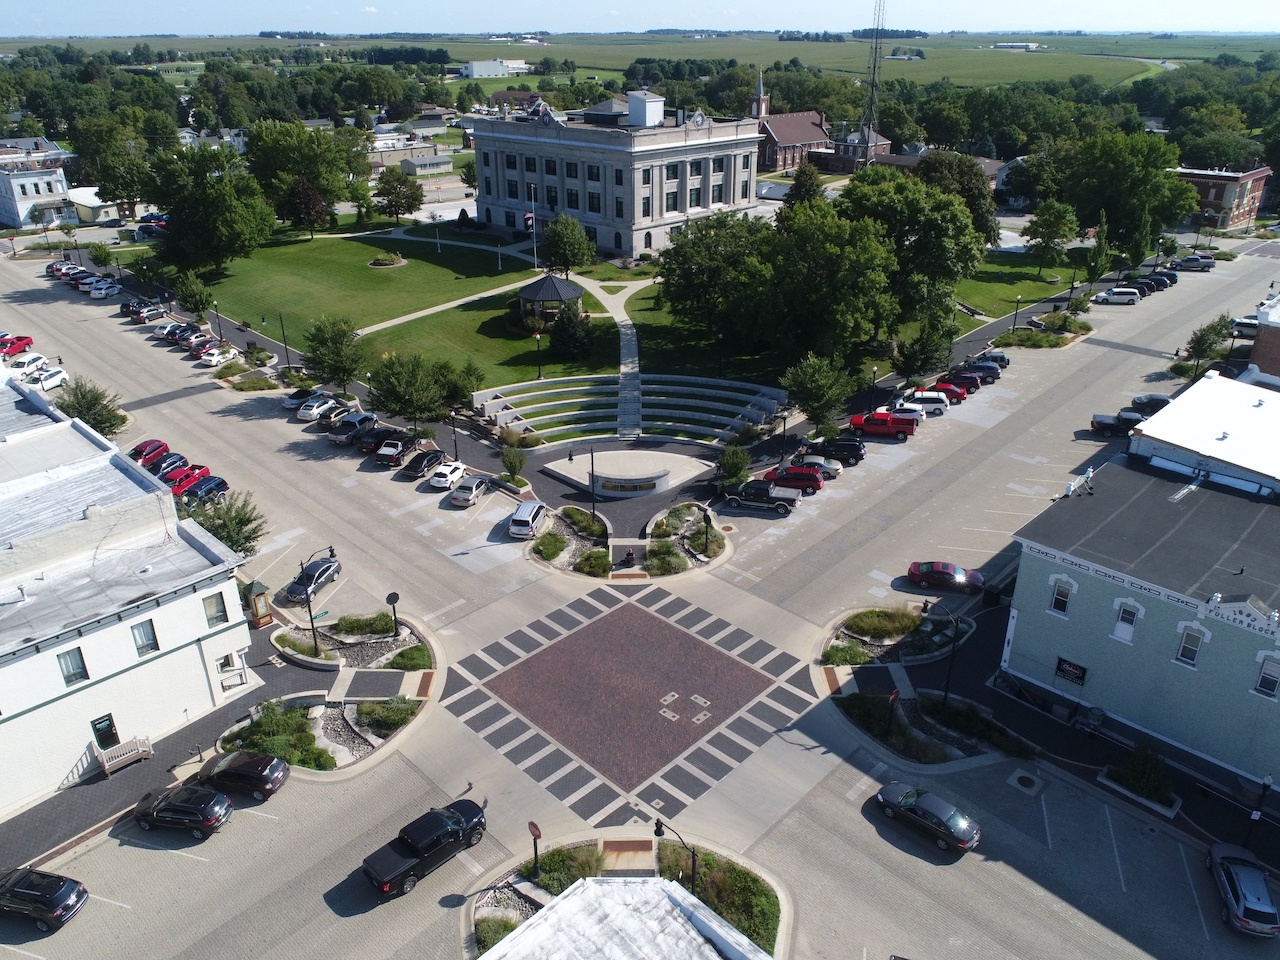 How the Town of West Union Built a Transformational Geothermal Project